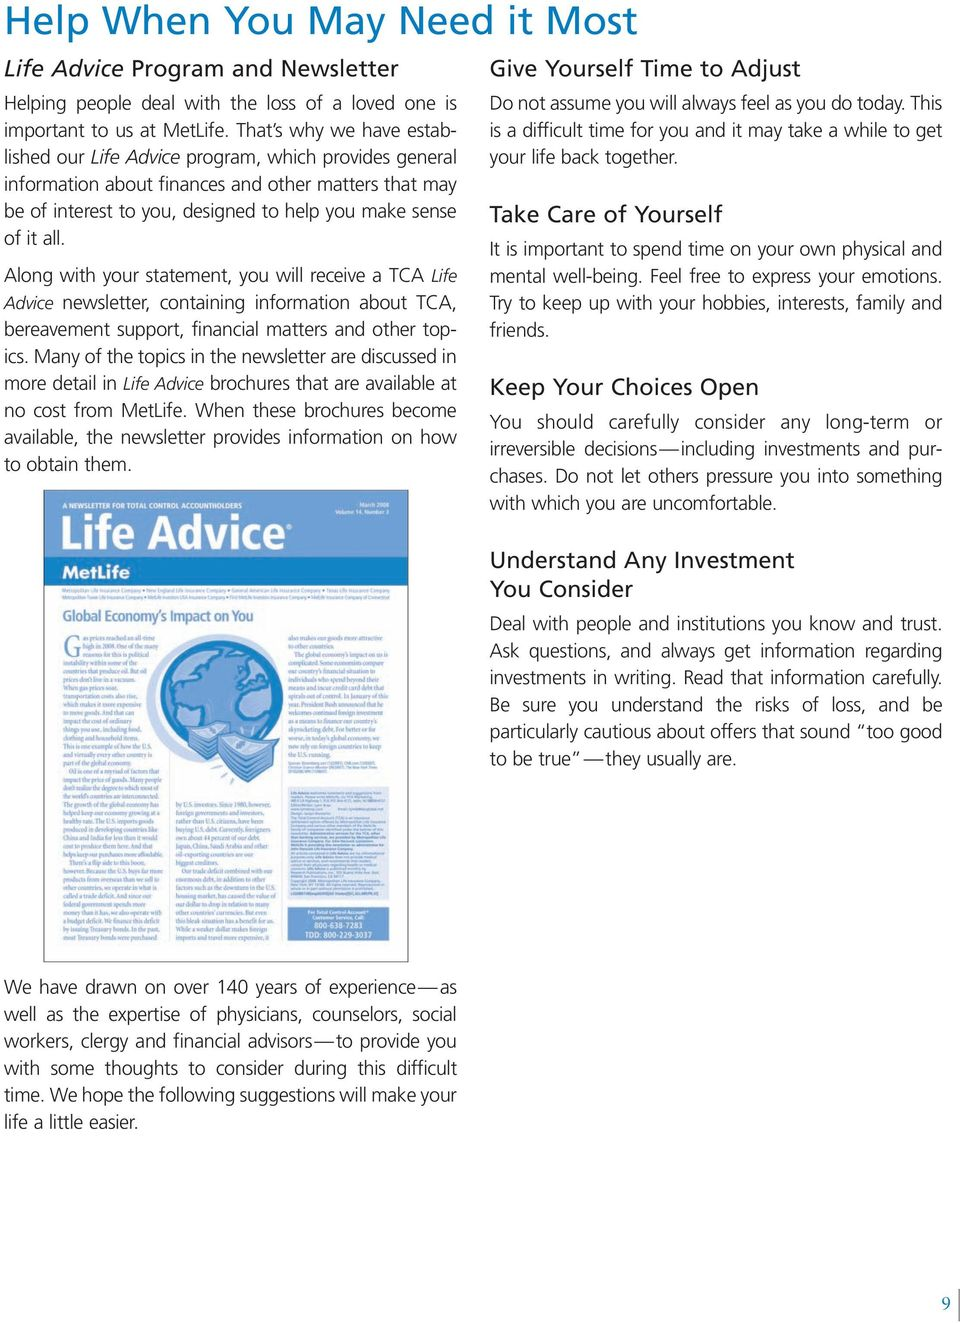 Along with your statement, you will receive a TCA Life Advice newsletter, containing information about TCA, bereavement support, financial matters and other topics.